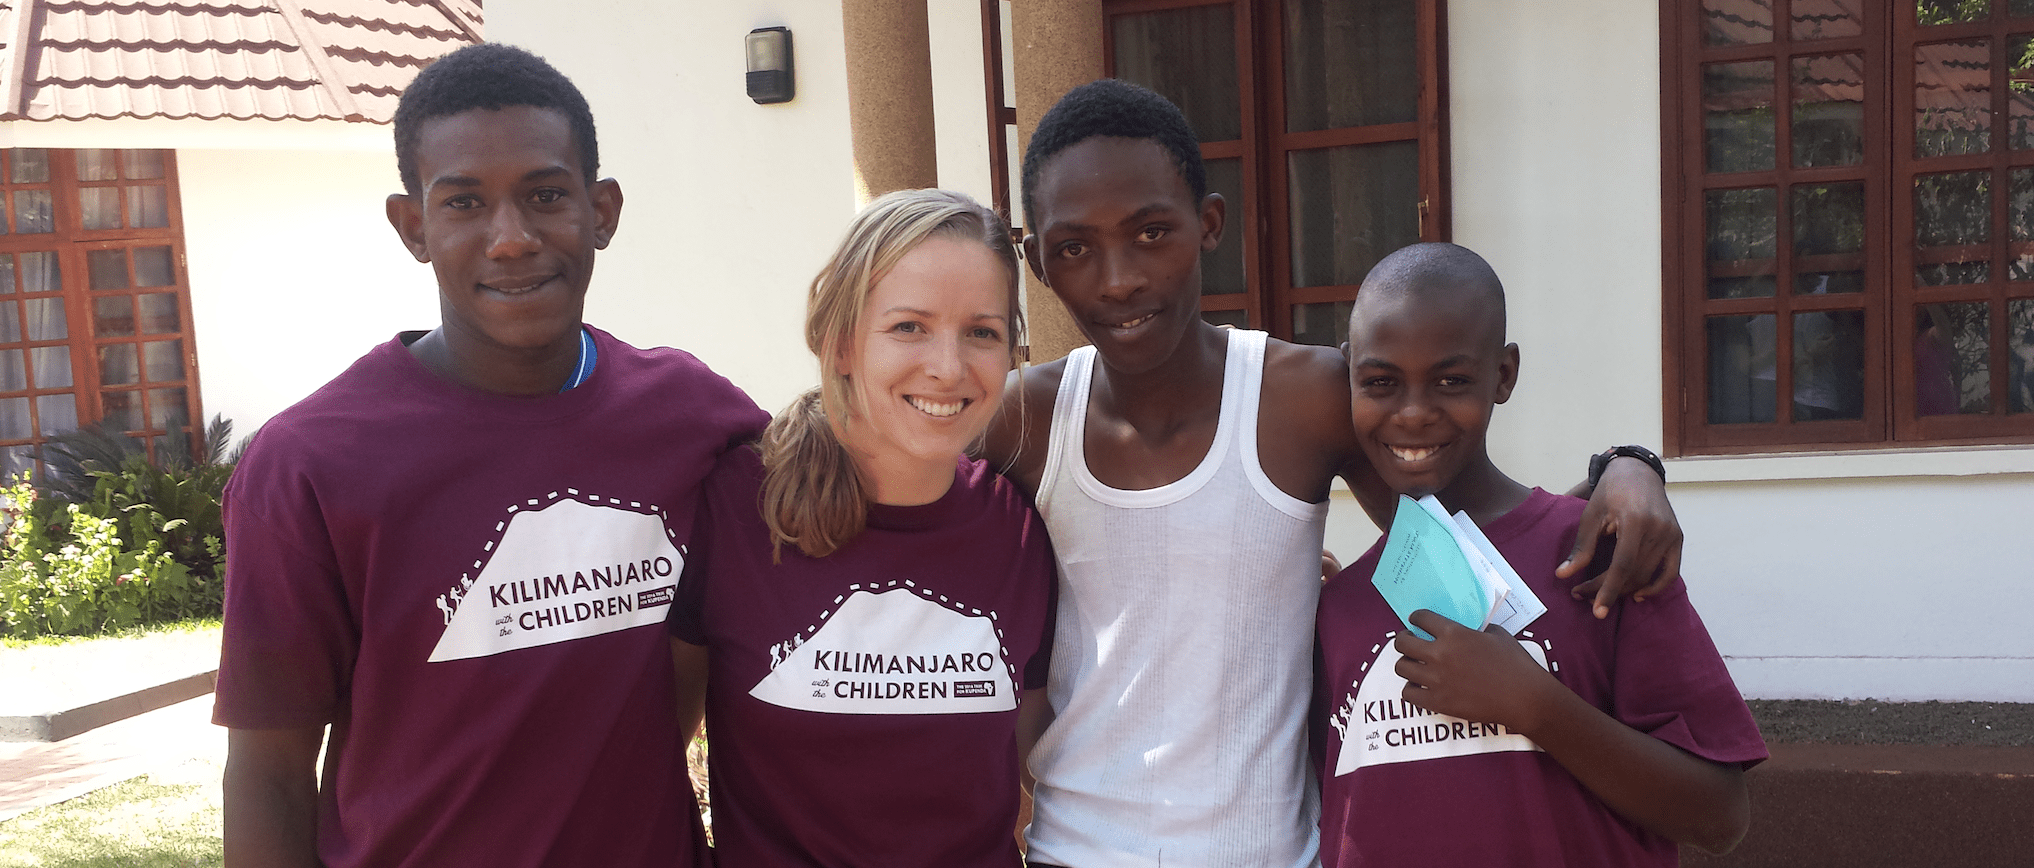 Three Kenyan children standing with a female smiling.